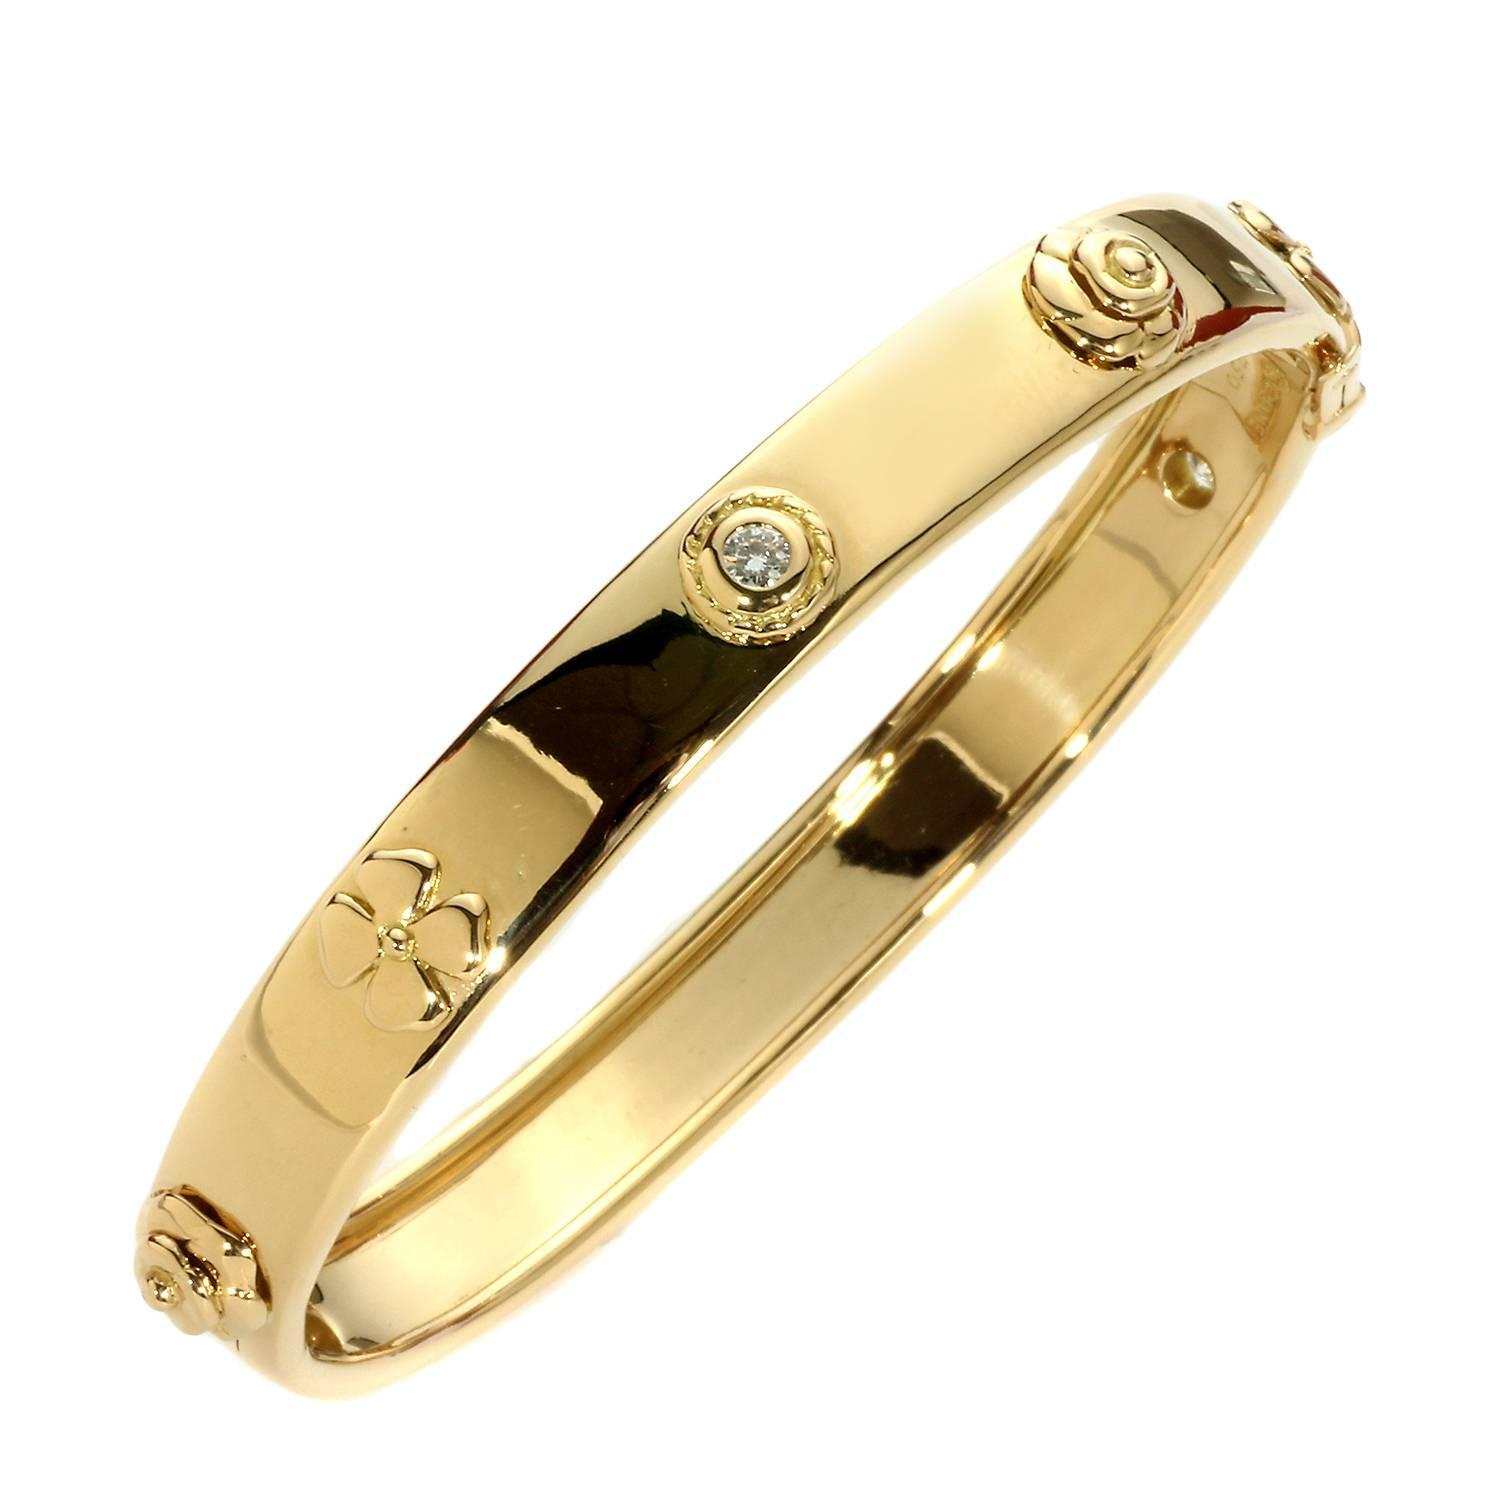 sale id z org bracelet for chanel diamond at jewelry bangles camellia gold bracelets first j bangle